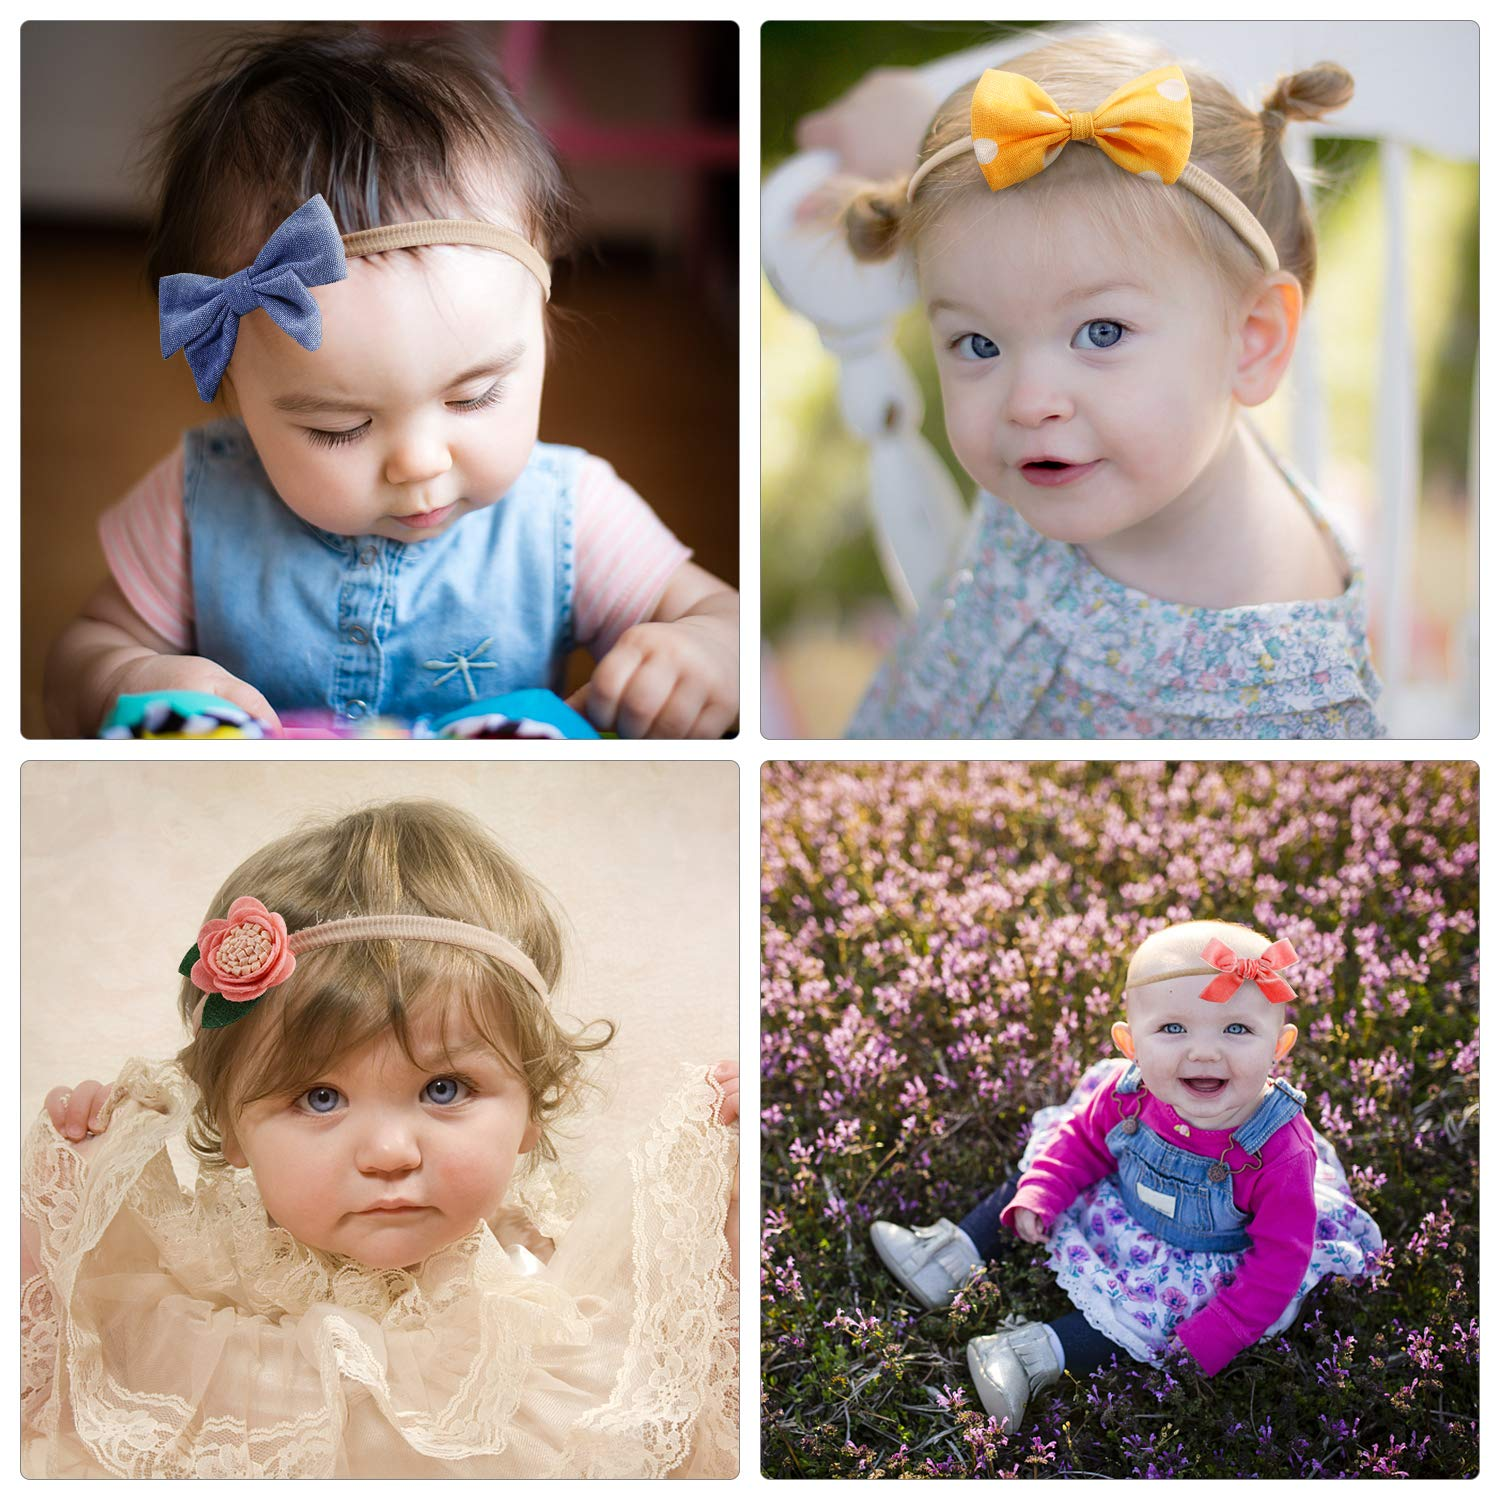 Newborn Infant Toddler Nylon Hairbands Hair Accessories Gifts by TOKUFAGU Baby Girl Headbands with Bows